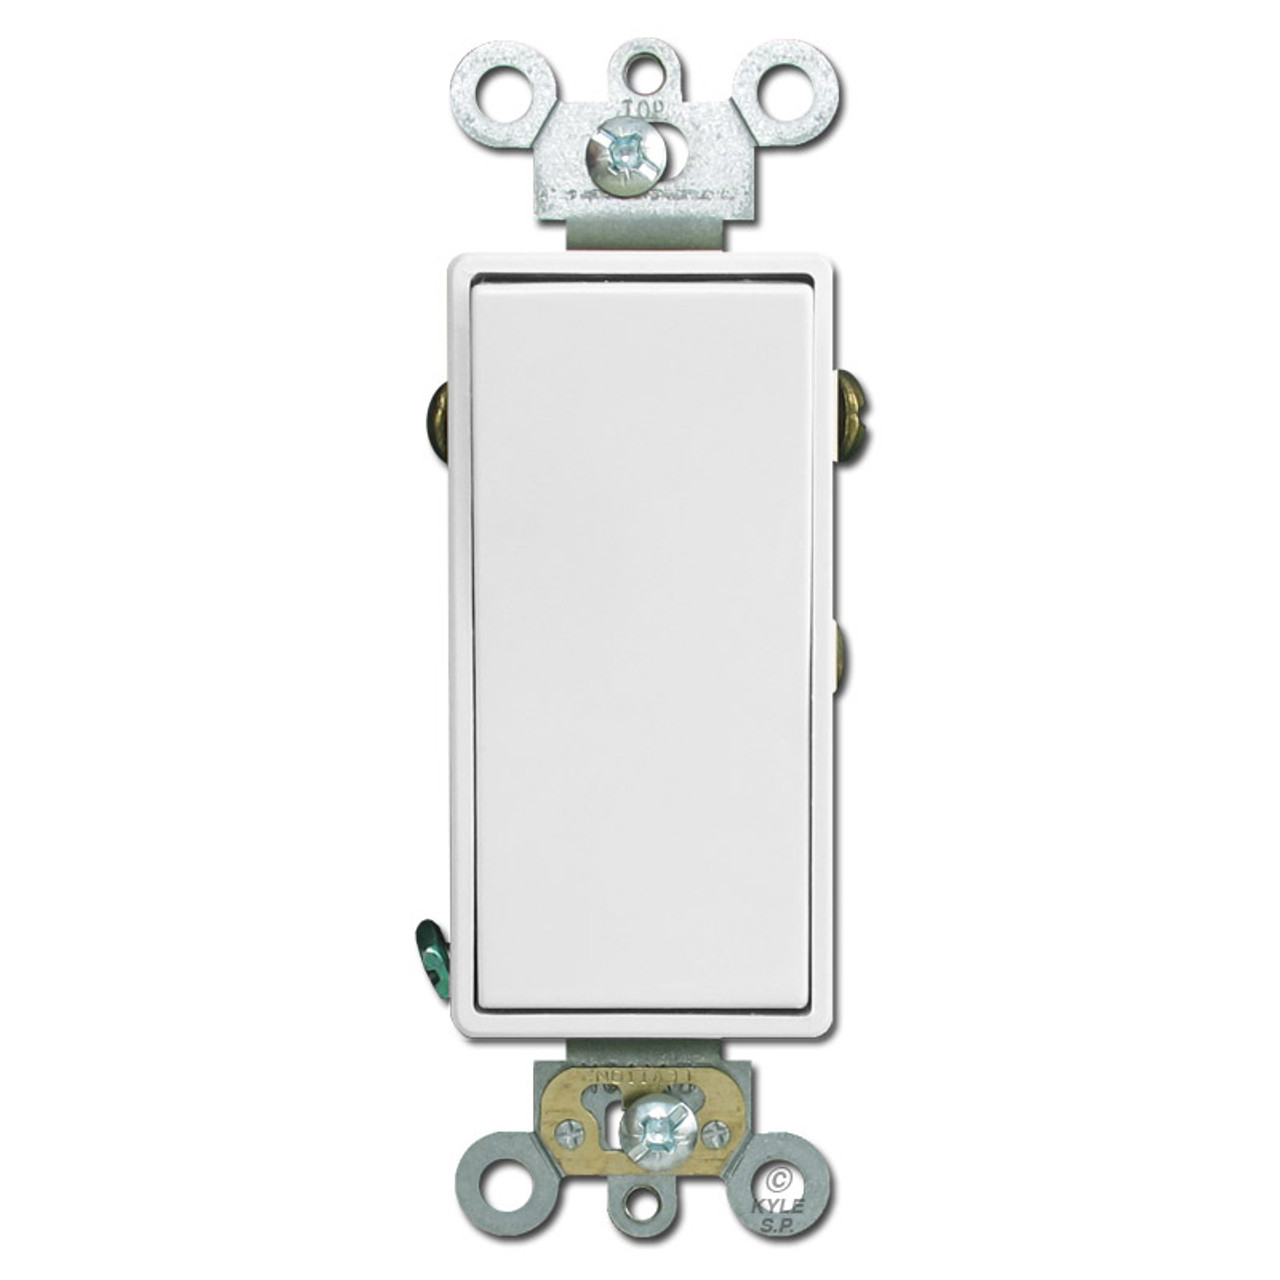 Leviton White SPDT DOUBLE THROW Center-Off Maintained Contact Switch 15A 1281-W